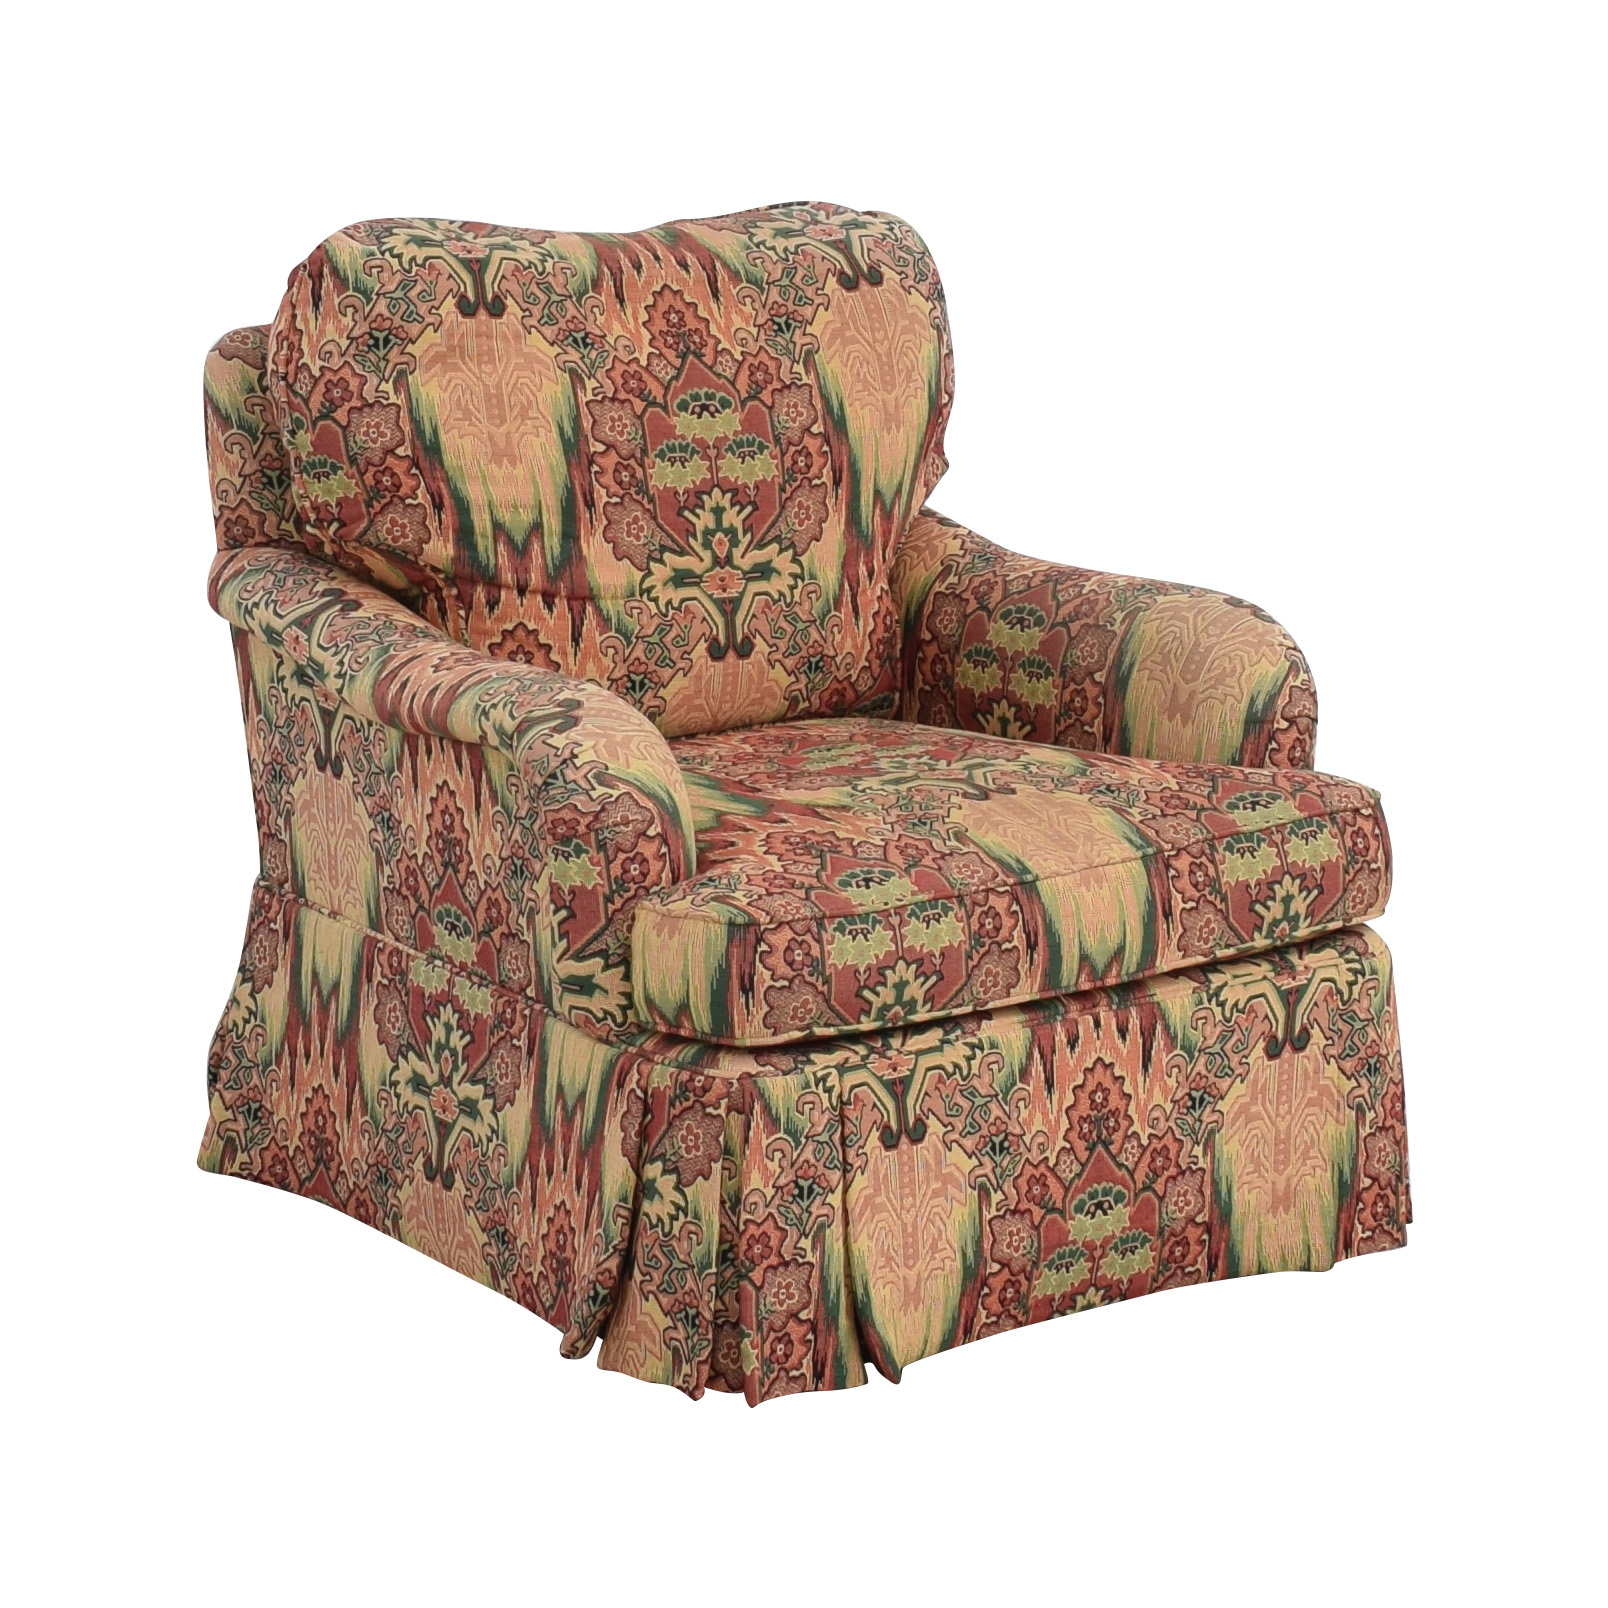 Pearson Pearson Fabric Accent Chair for sale